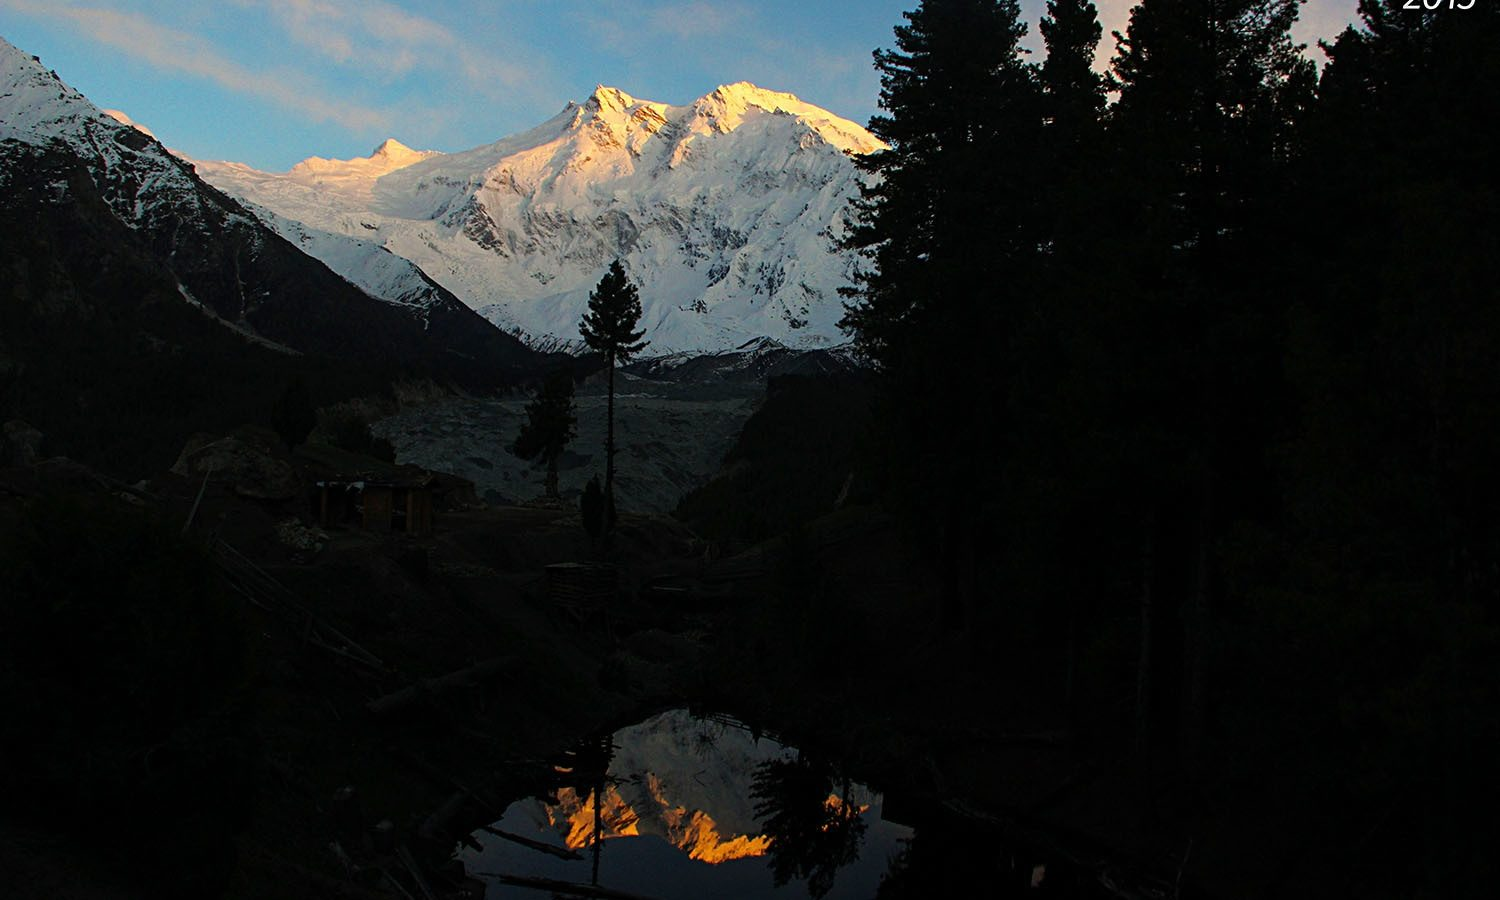 A view of Nanga Parbat in the morning